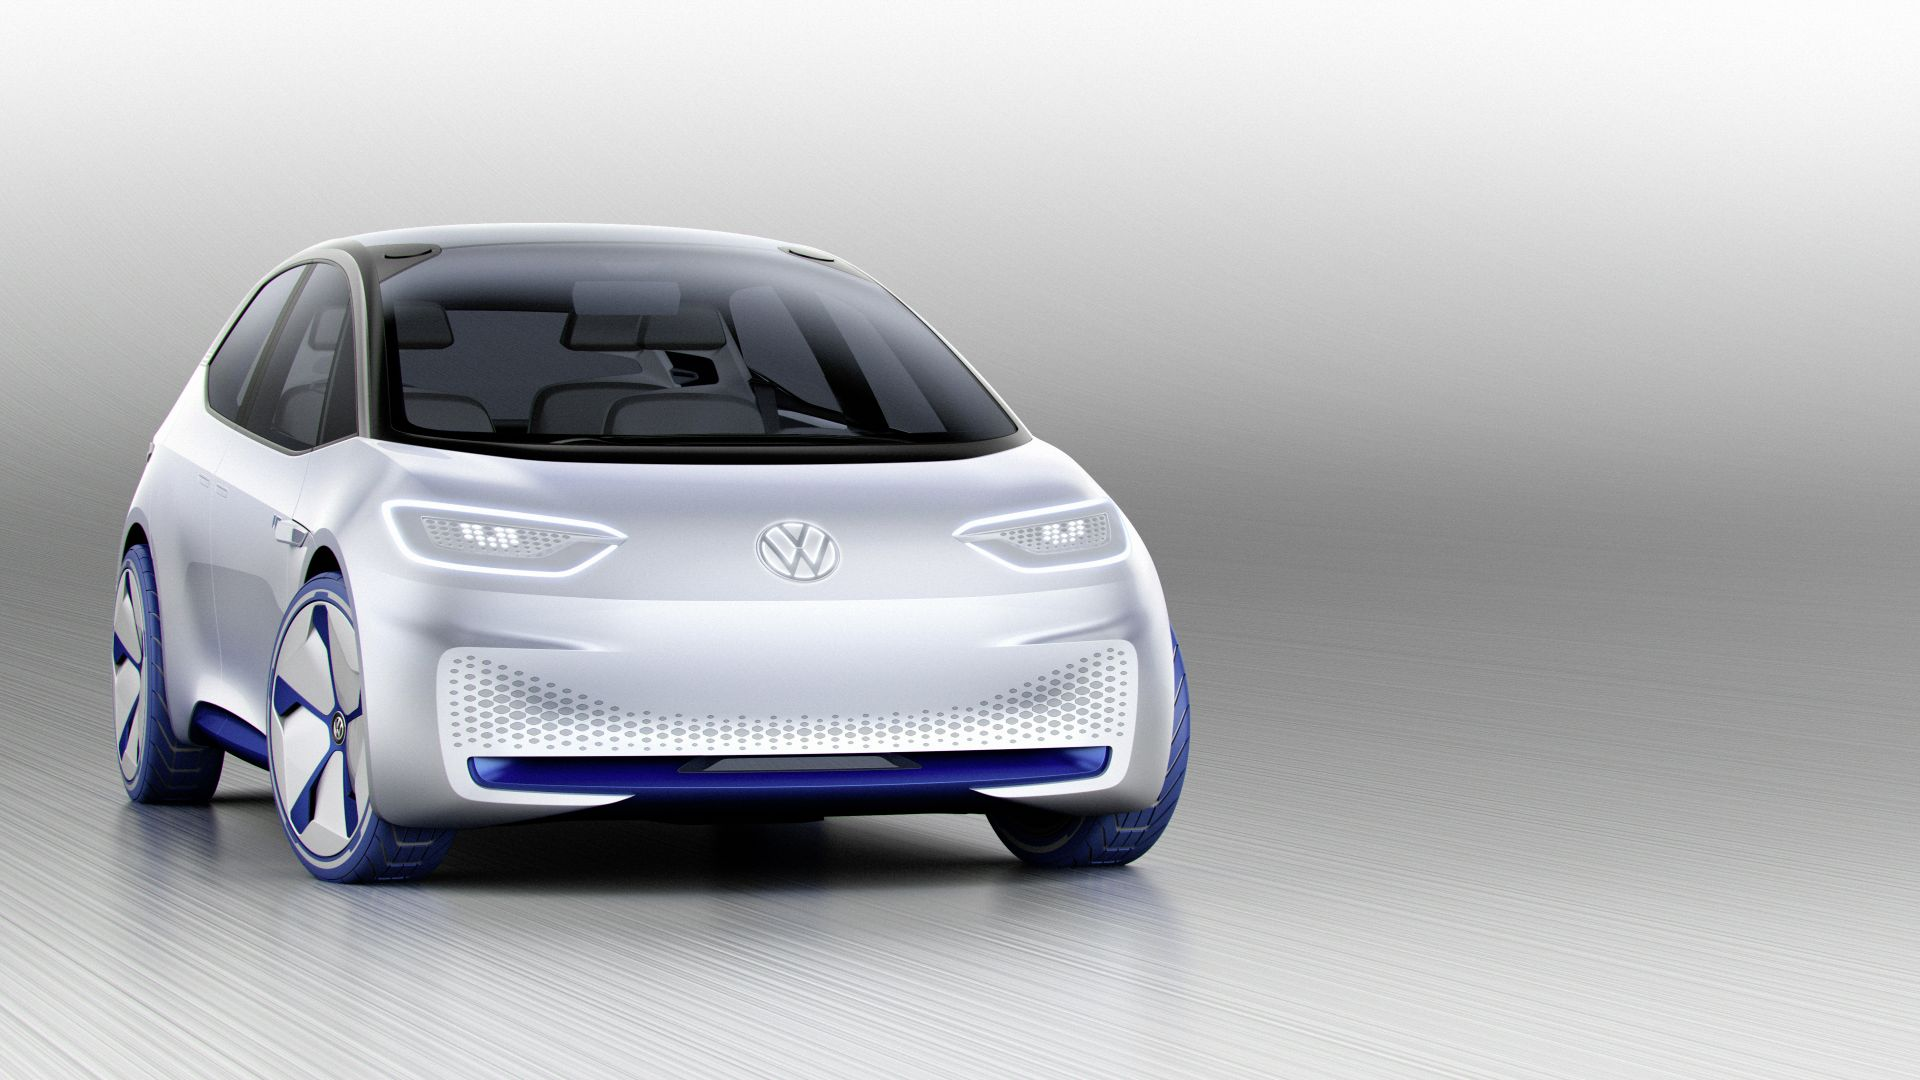 Фольцваген ИД, Volkswagen I.D., париж авто шоу 2016, электромобиль, Volkswagen I.D., paris auto show 2016, electric cars, white (horizontal)